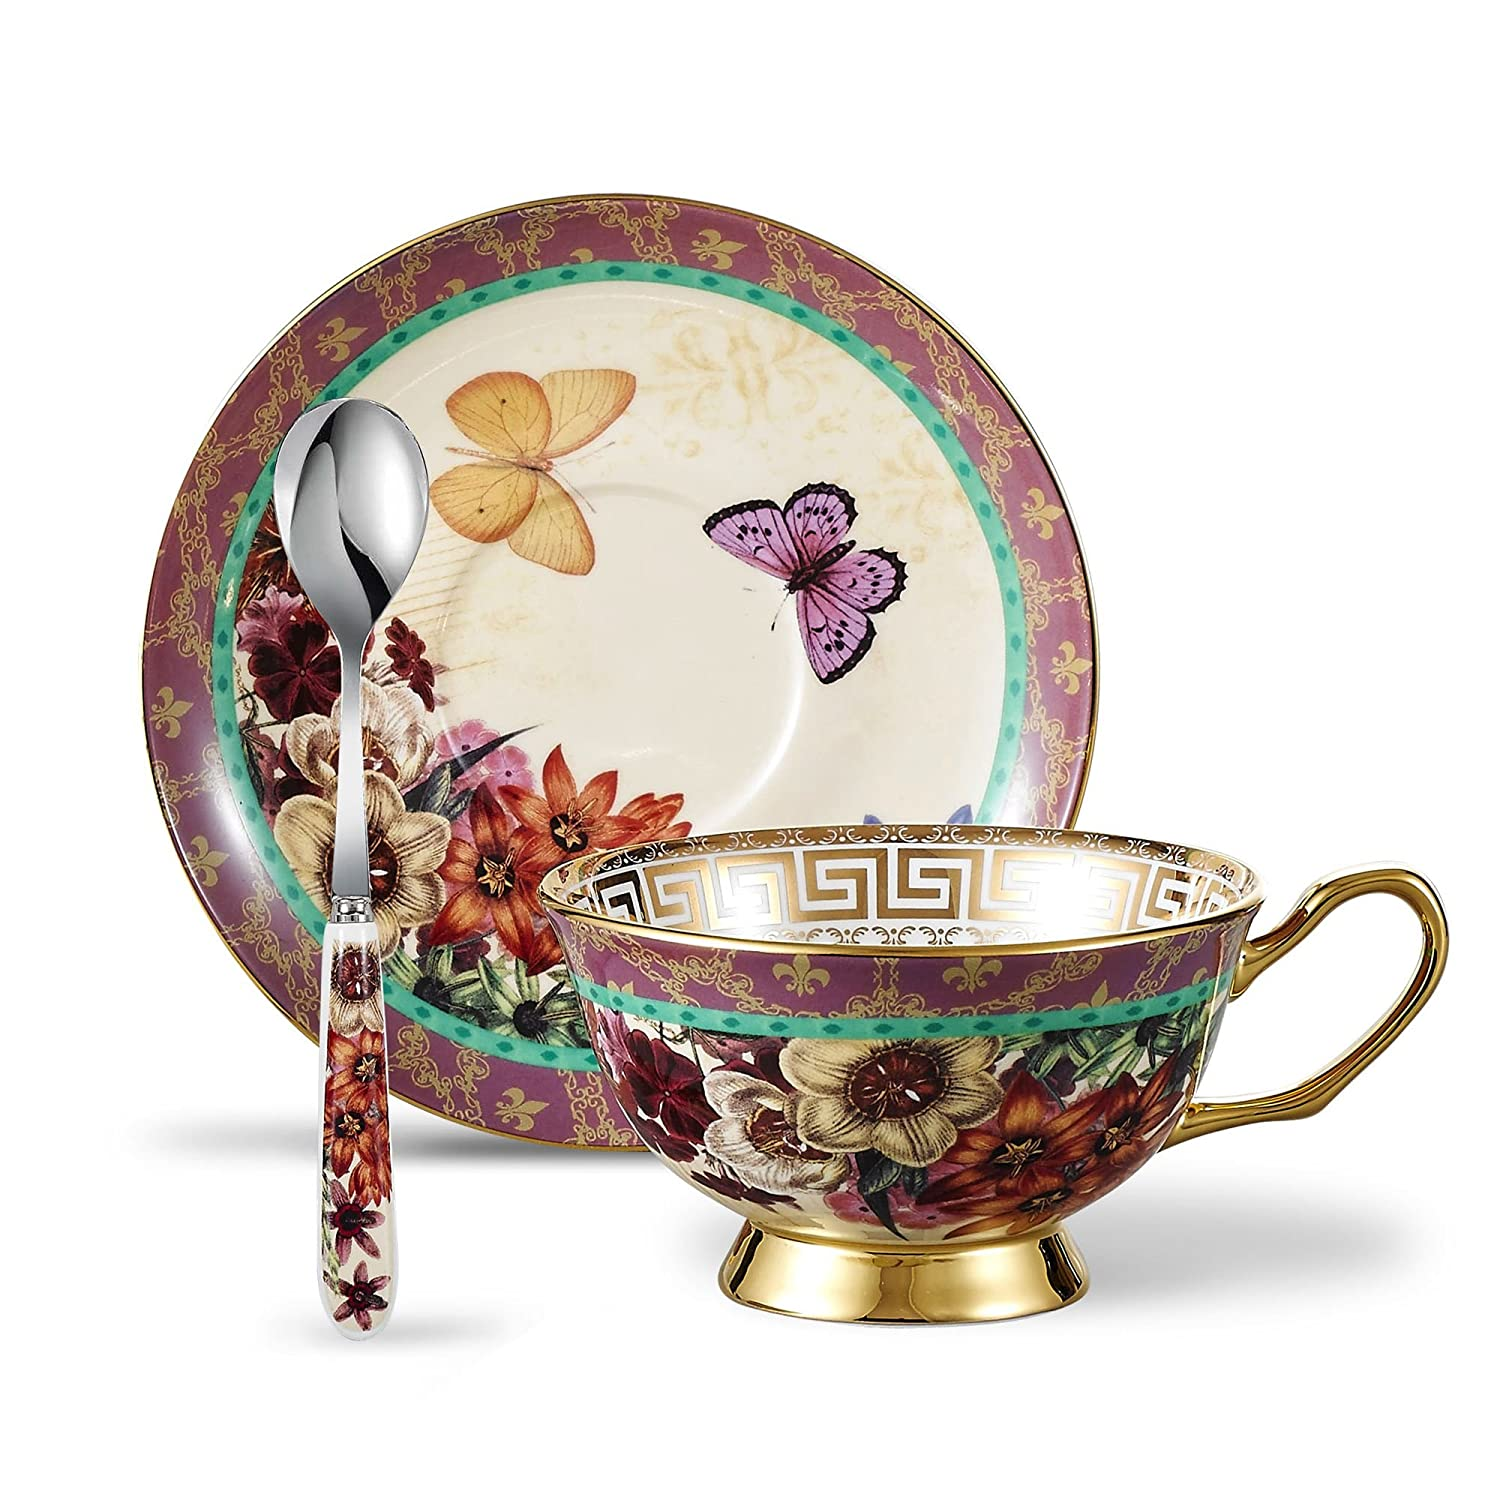 Panbado Bone China 6.8 oz Tea Cup and Saucer Set with Spoon, Set of 3 - Butterfly and Flower BC-CC-026